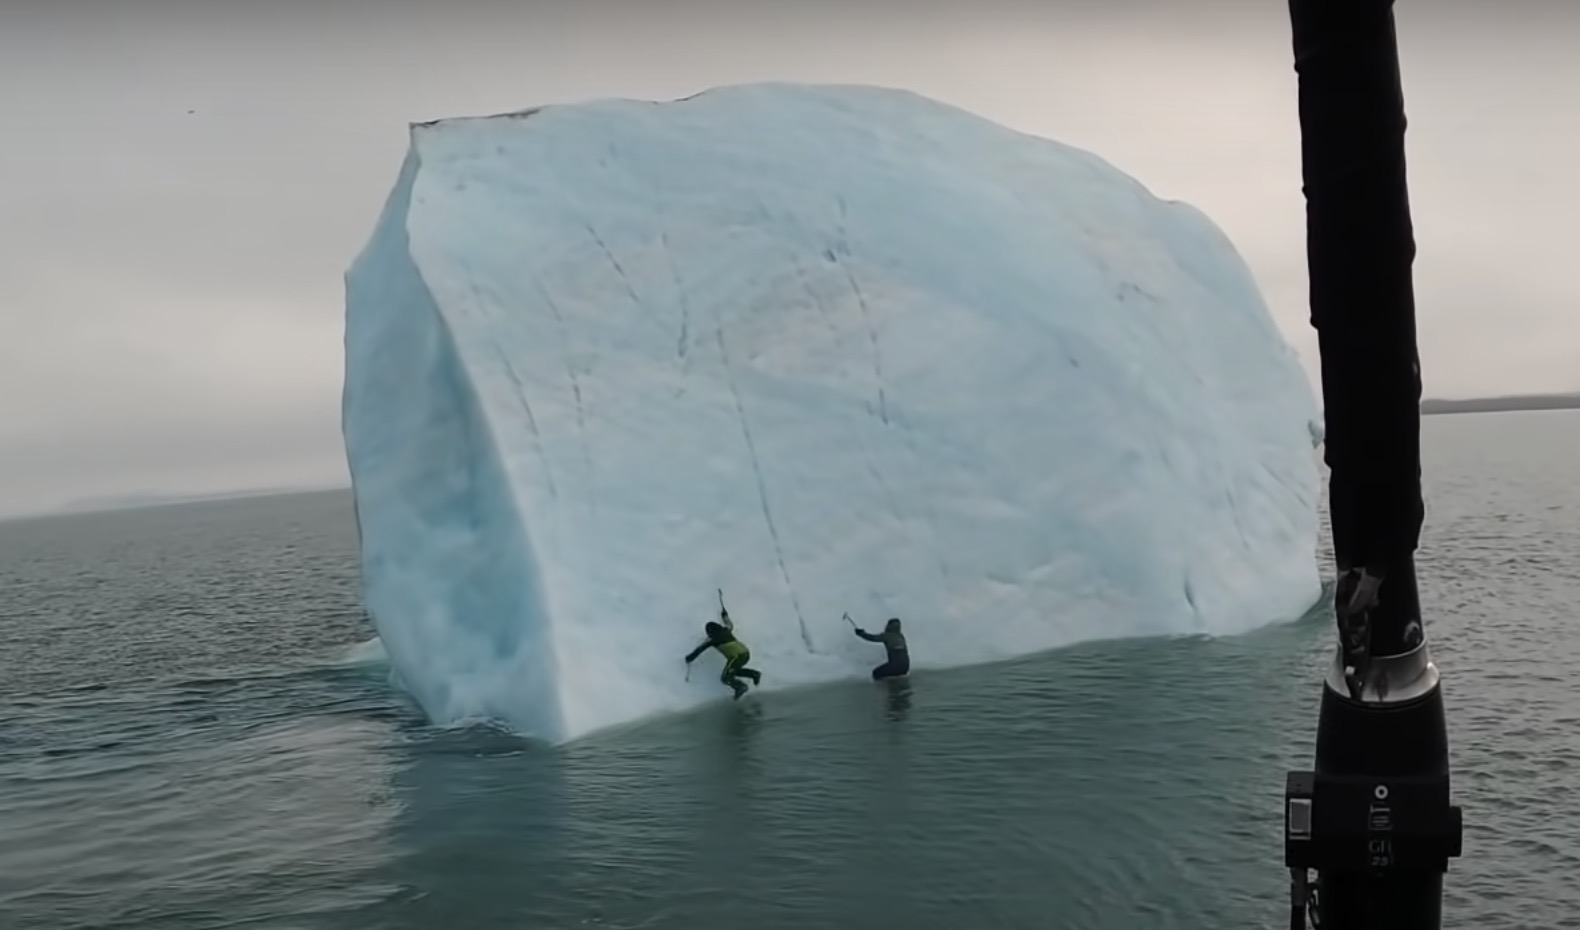 The two climbers scramble into the water.